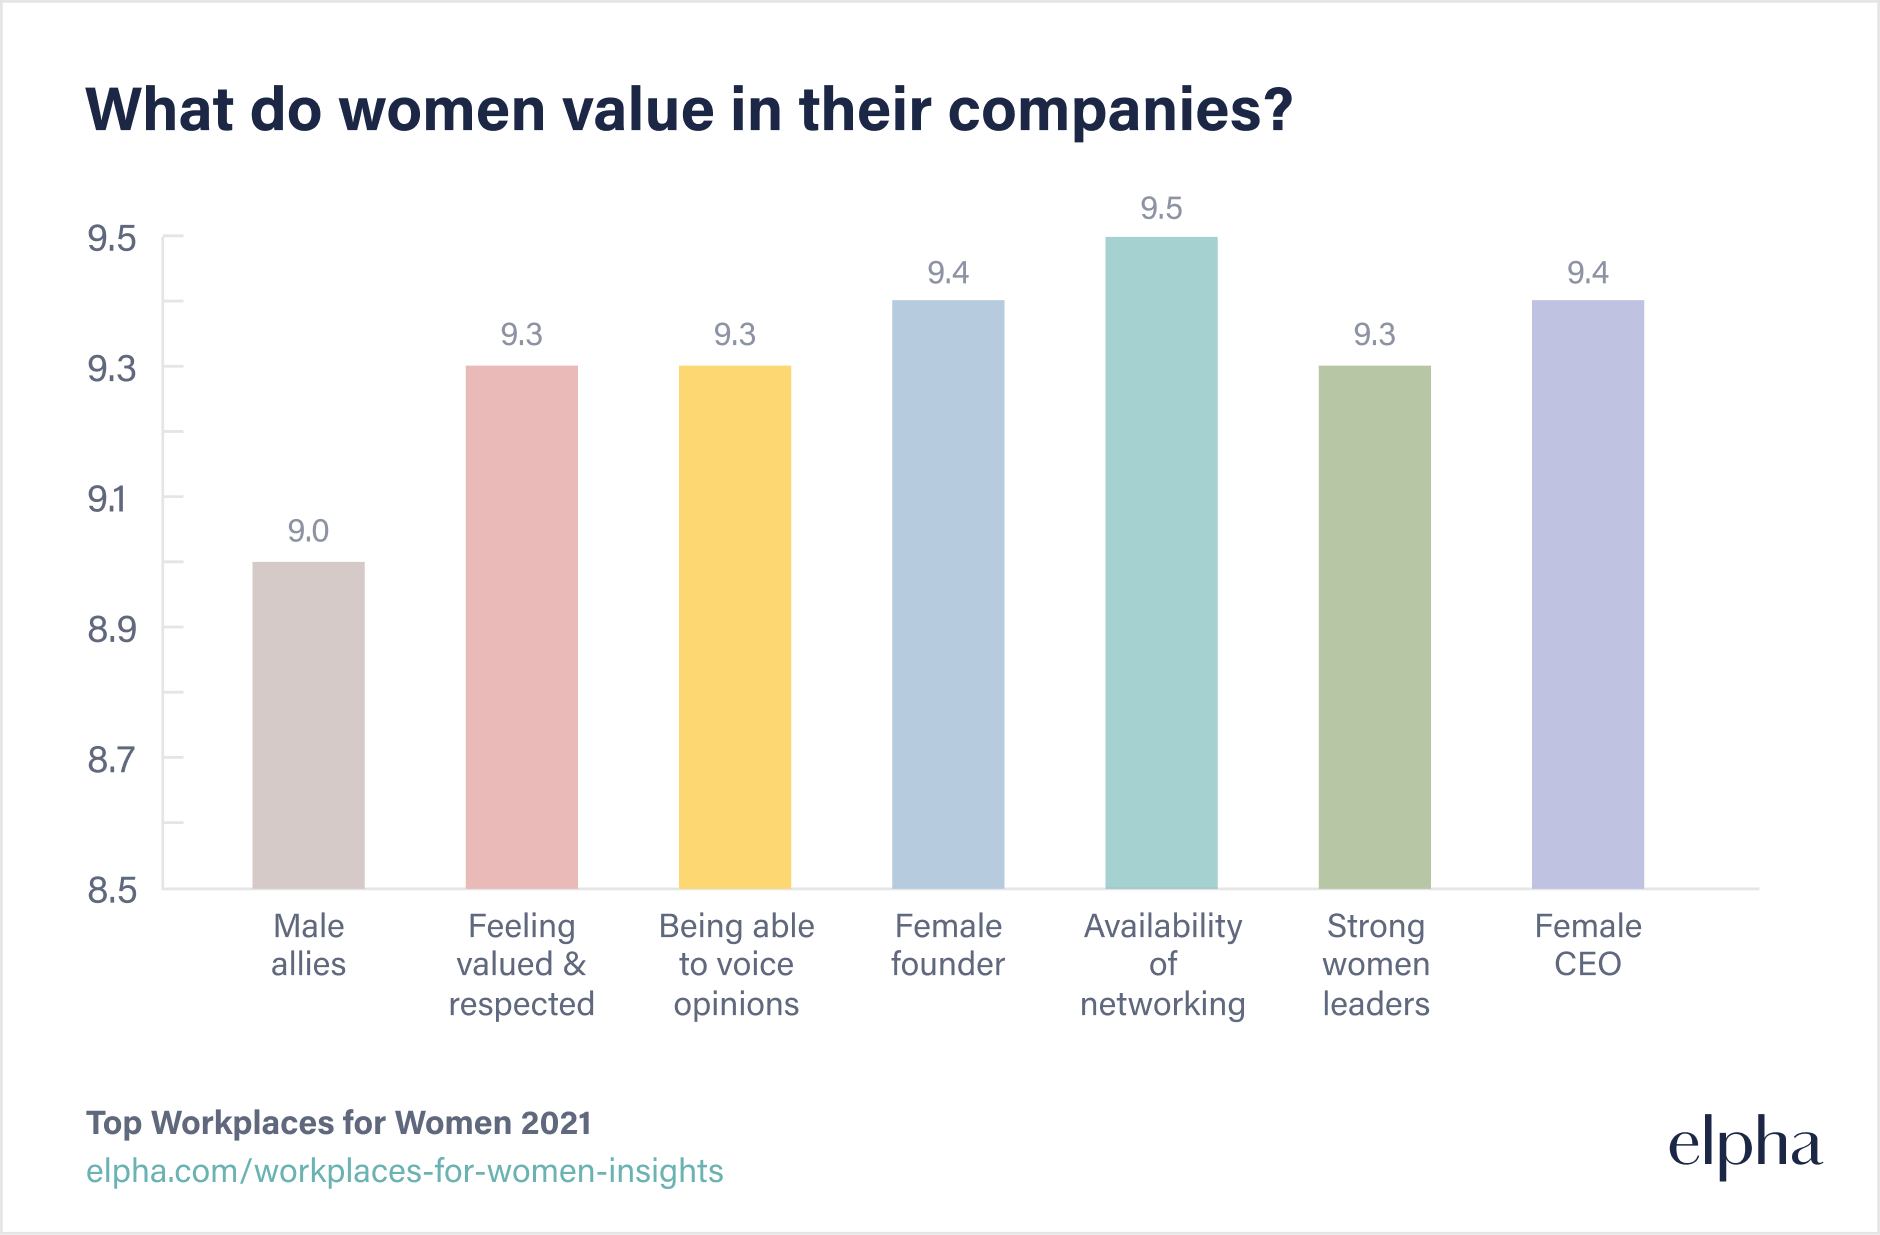 What do women value in their companies?